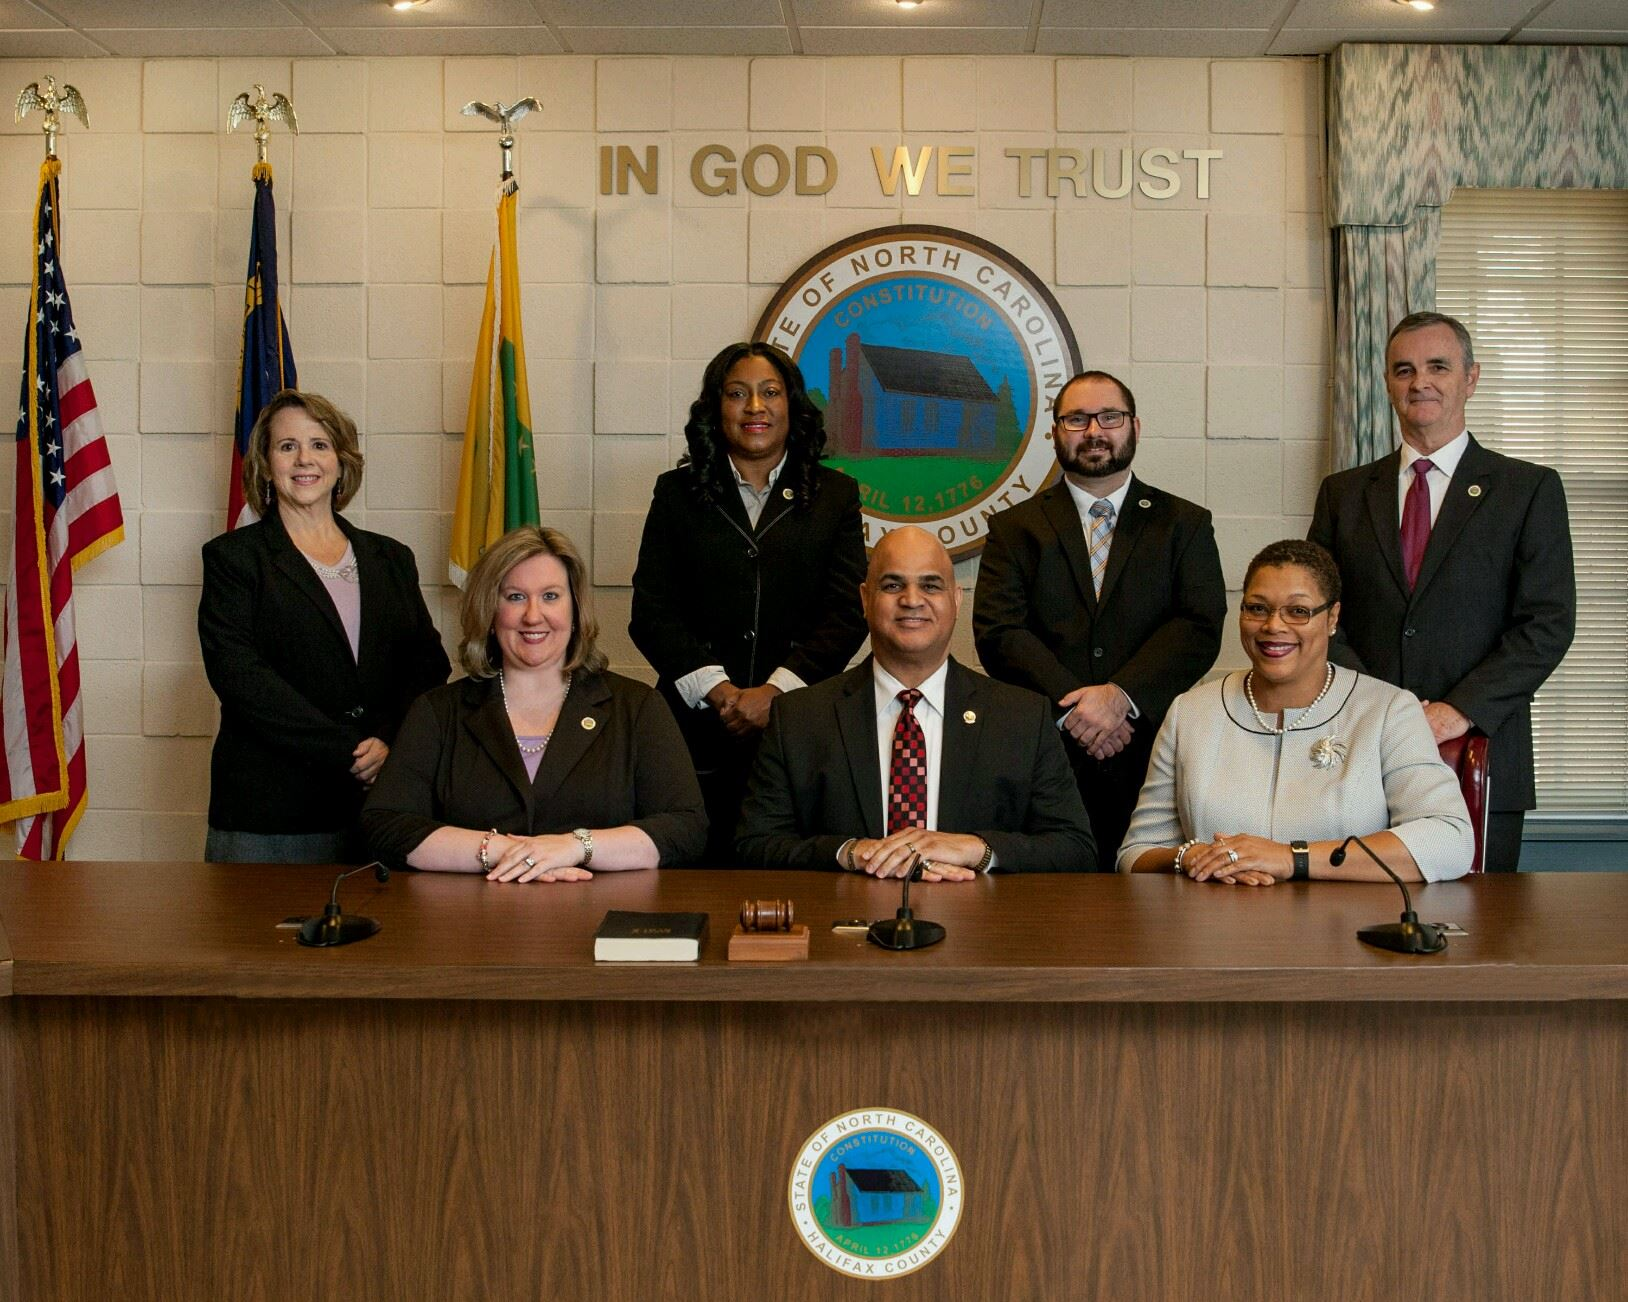 Picture of the seven members of the County Management team